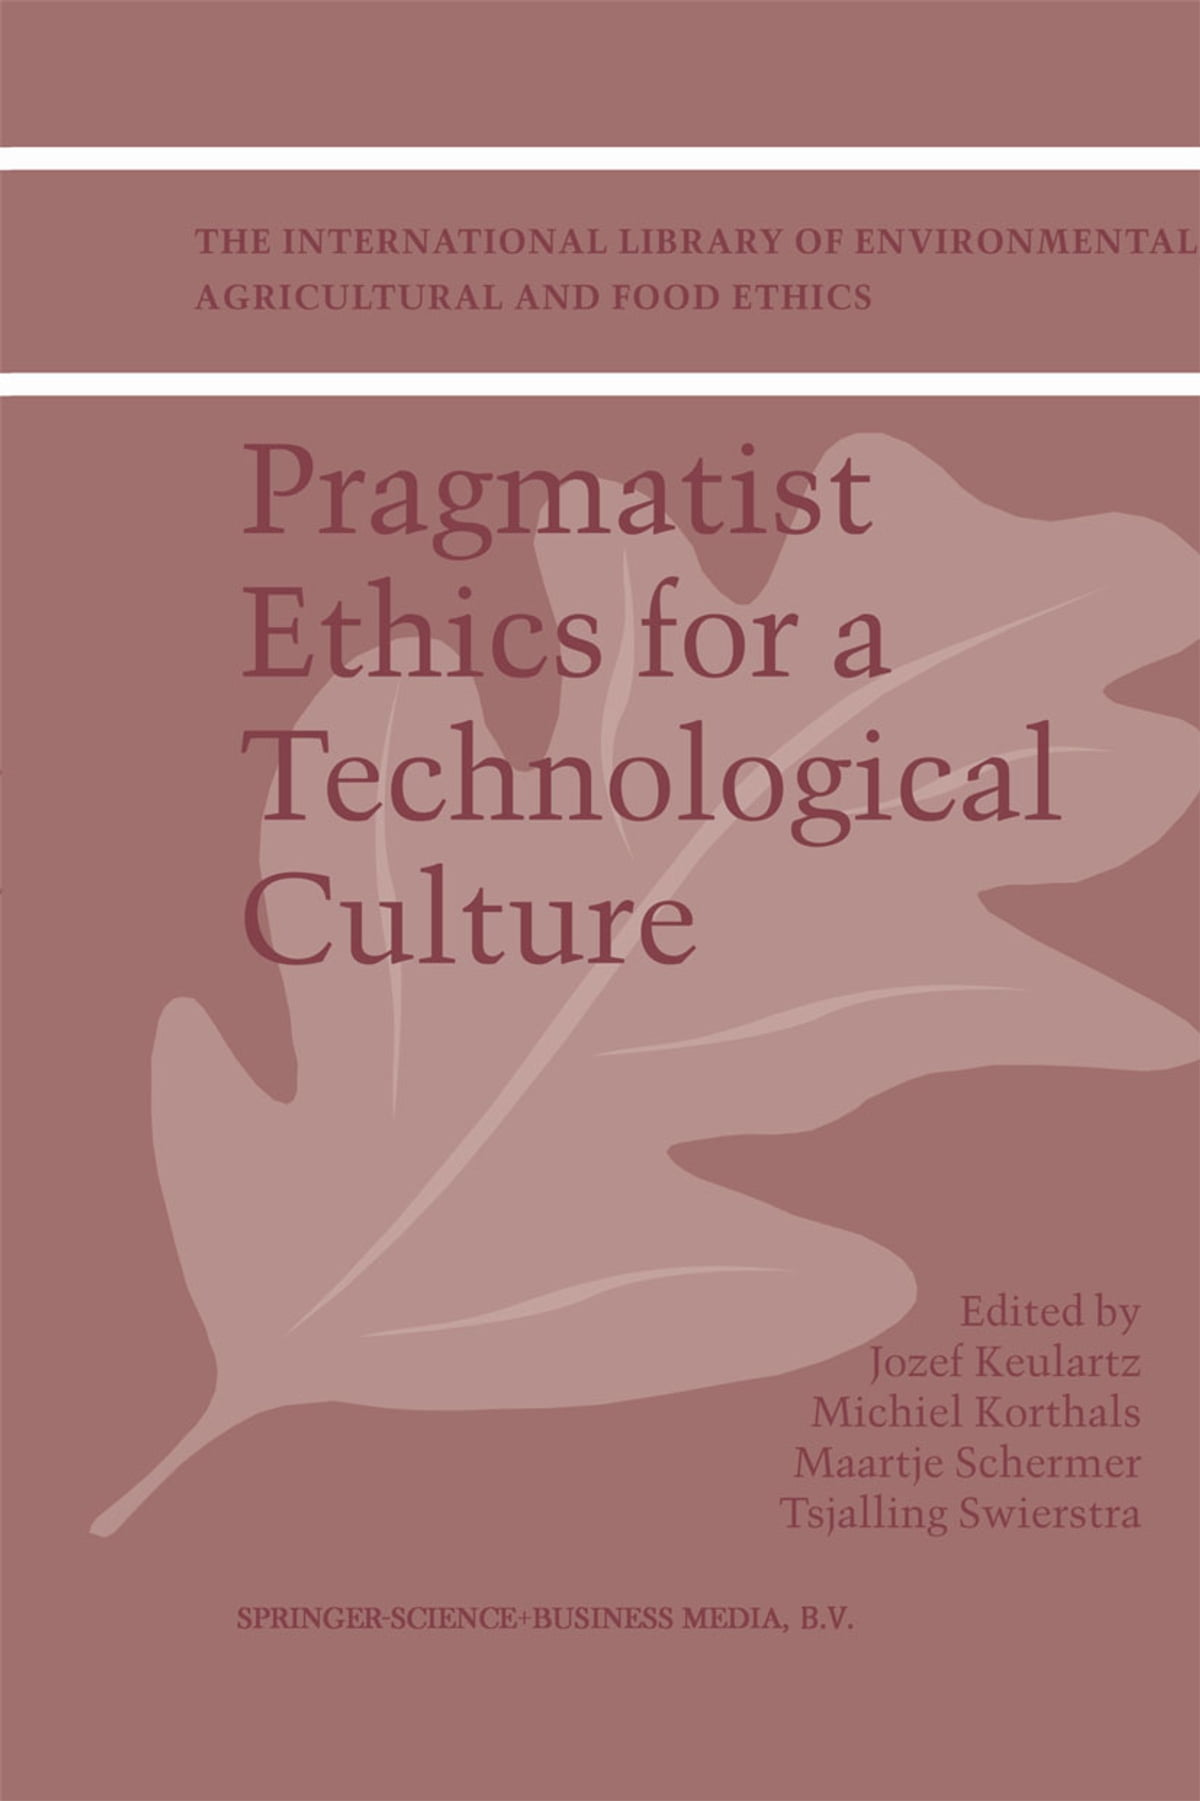 Pragmatist ethics for a technological culture ebook by pragmatist ethics for a technological culture ebook by 9789401003018 rakuten kobo fandeluxe Image collections